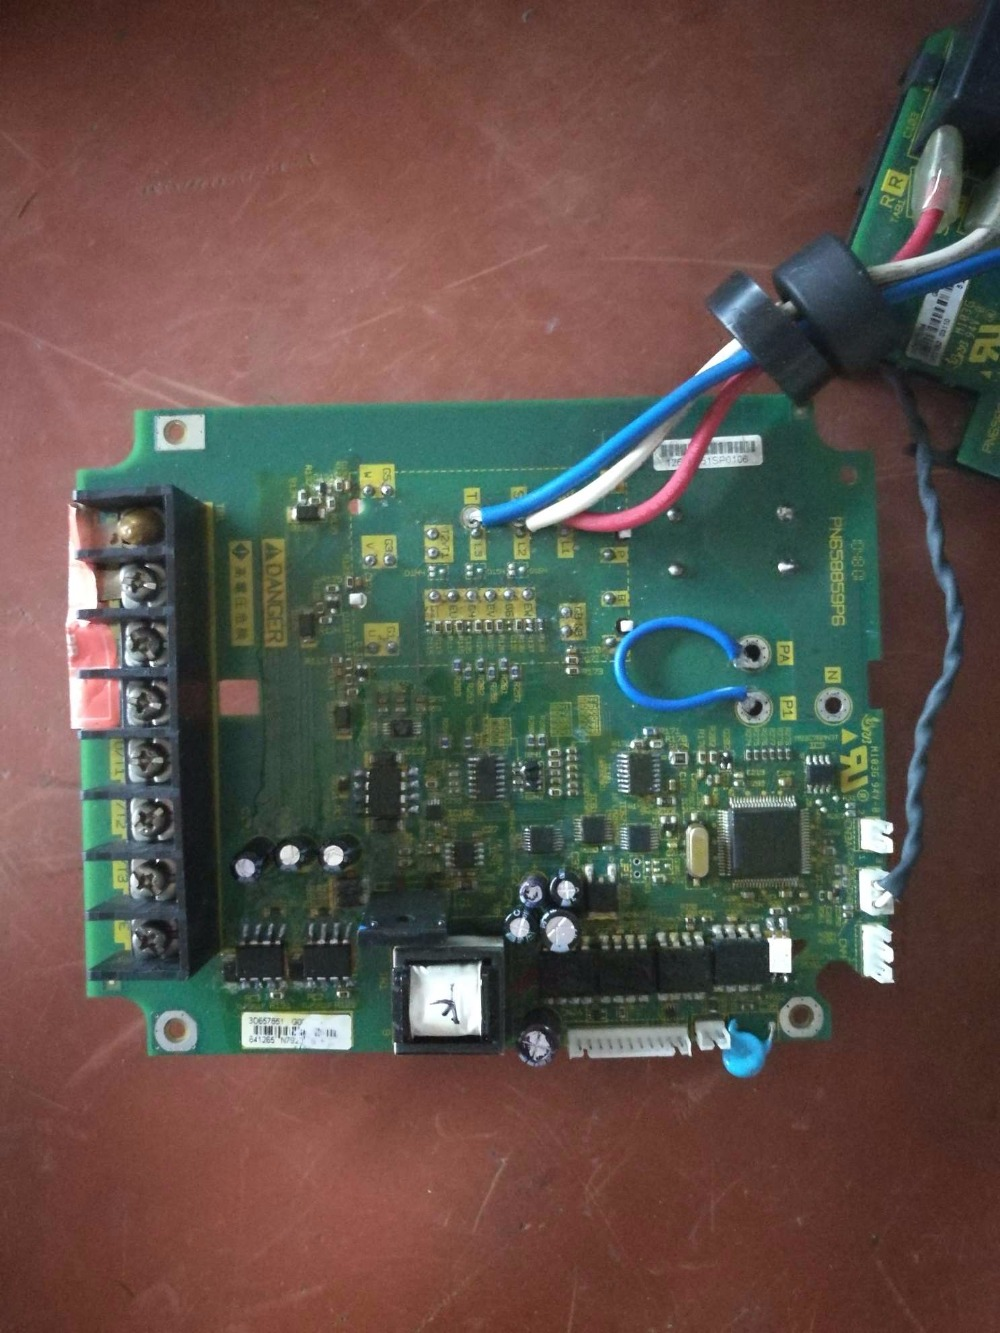 ATV302HU22N4 inverter ATV302 series 2.2kw plate trigger board power panel 30 kw inverter power driven plate placed board ypct31521 1a and etc617143